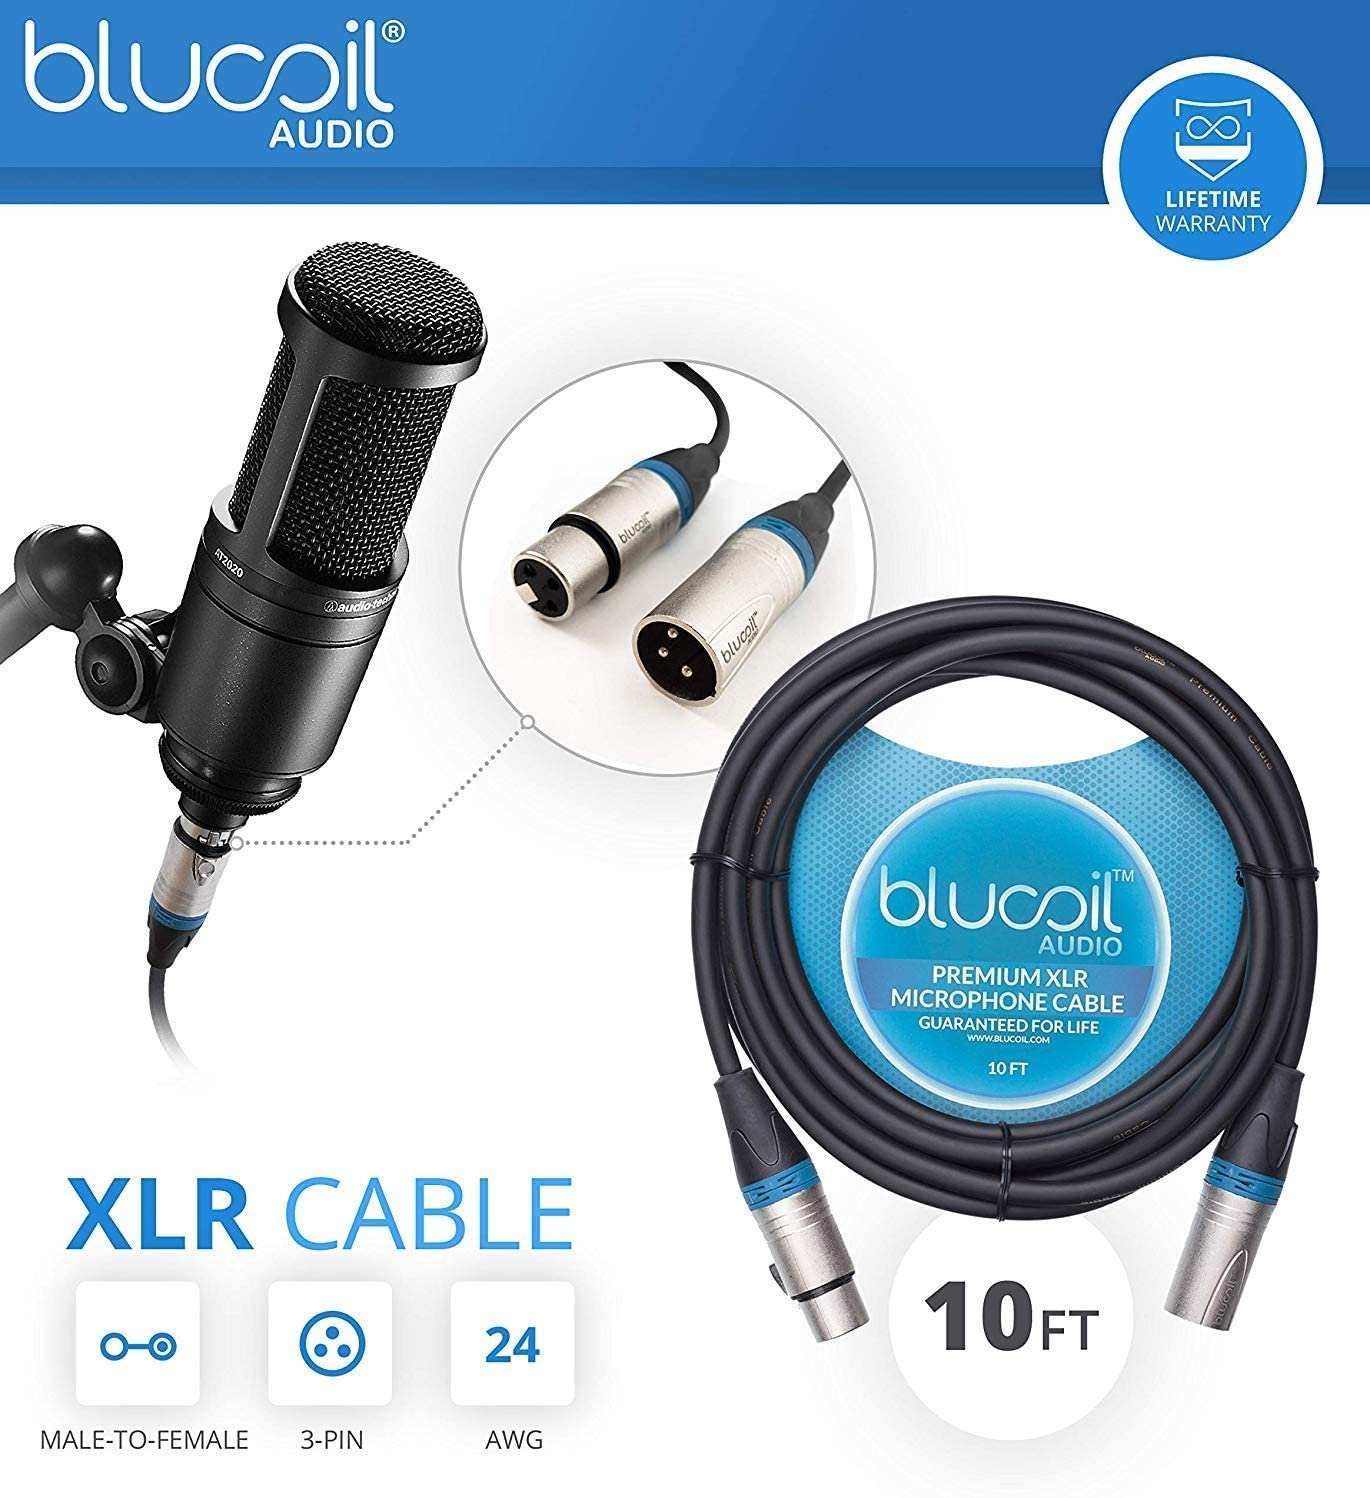 Behringer XENYX 302USB Mixer and USB Audio Interface for Windows and Mac Bundle with AT2020 Cardioid Condenser Microphone Blucoil 10-FT Balanced XLR Cable and Pop Filter Windscreen